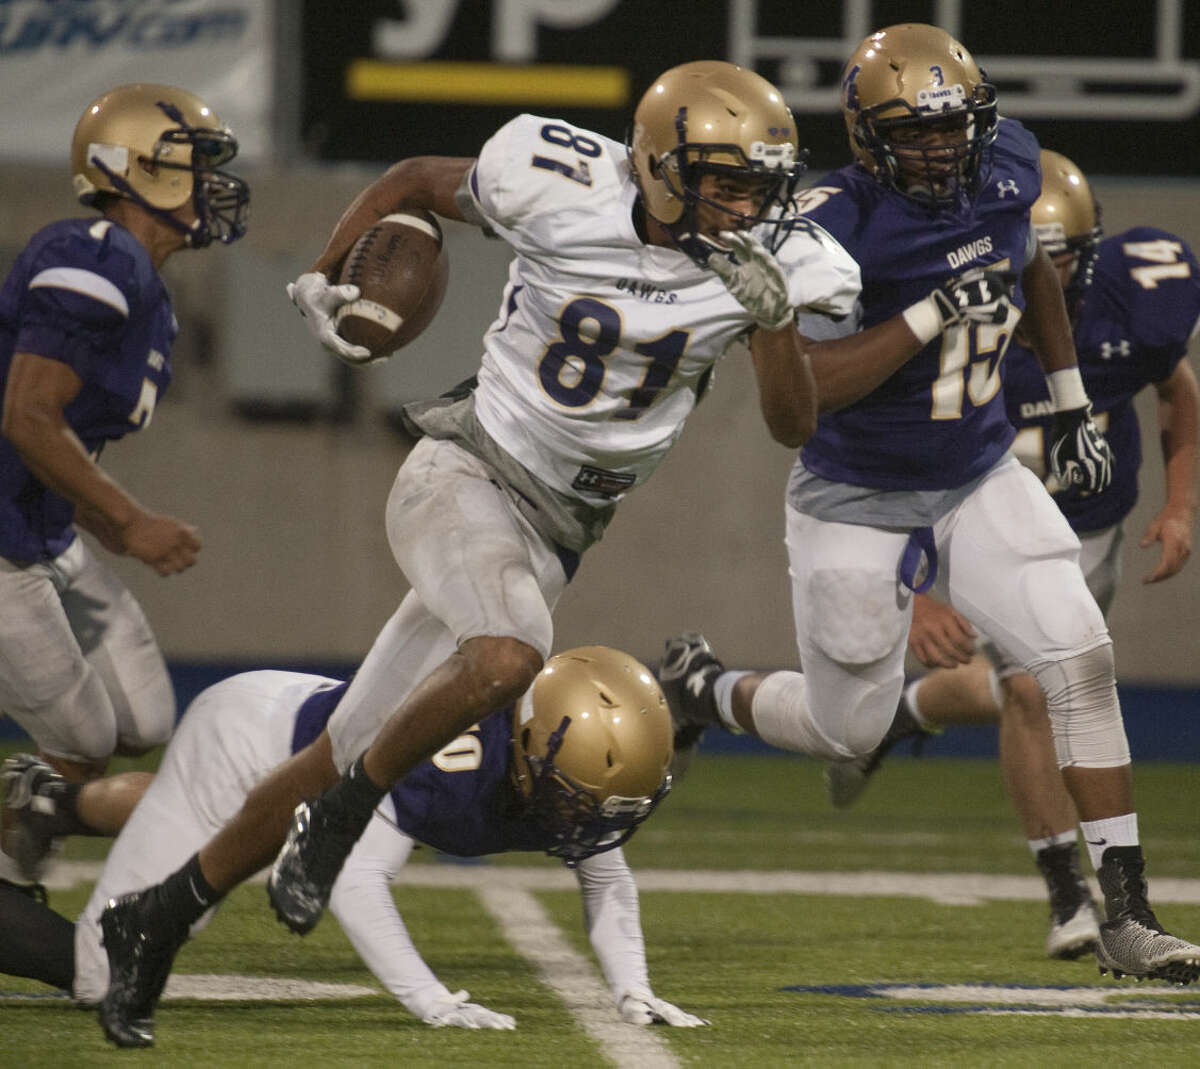 Midland High white team's Courtney McMaryion gets around MHS purple team's Hernan Lujan and other defenders Thursday, 5-21-15, during the Spring game at Grande Communications Stadium. Tim Fischer\Reporter-Telegram